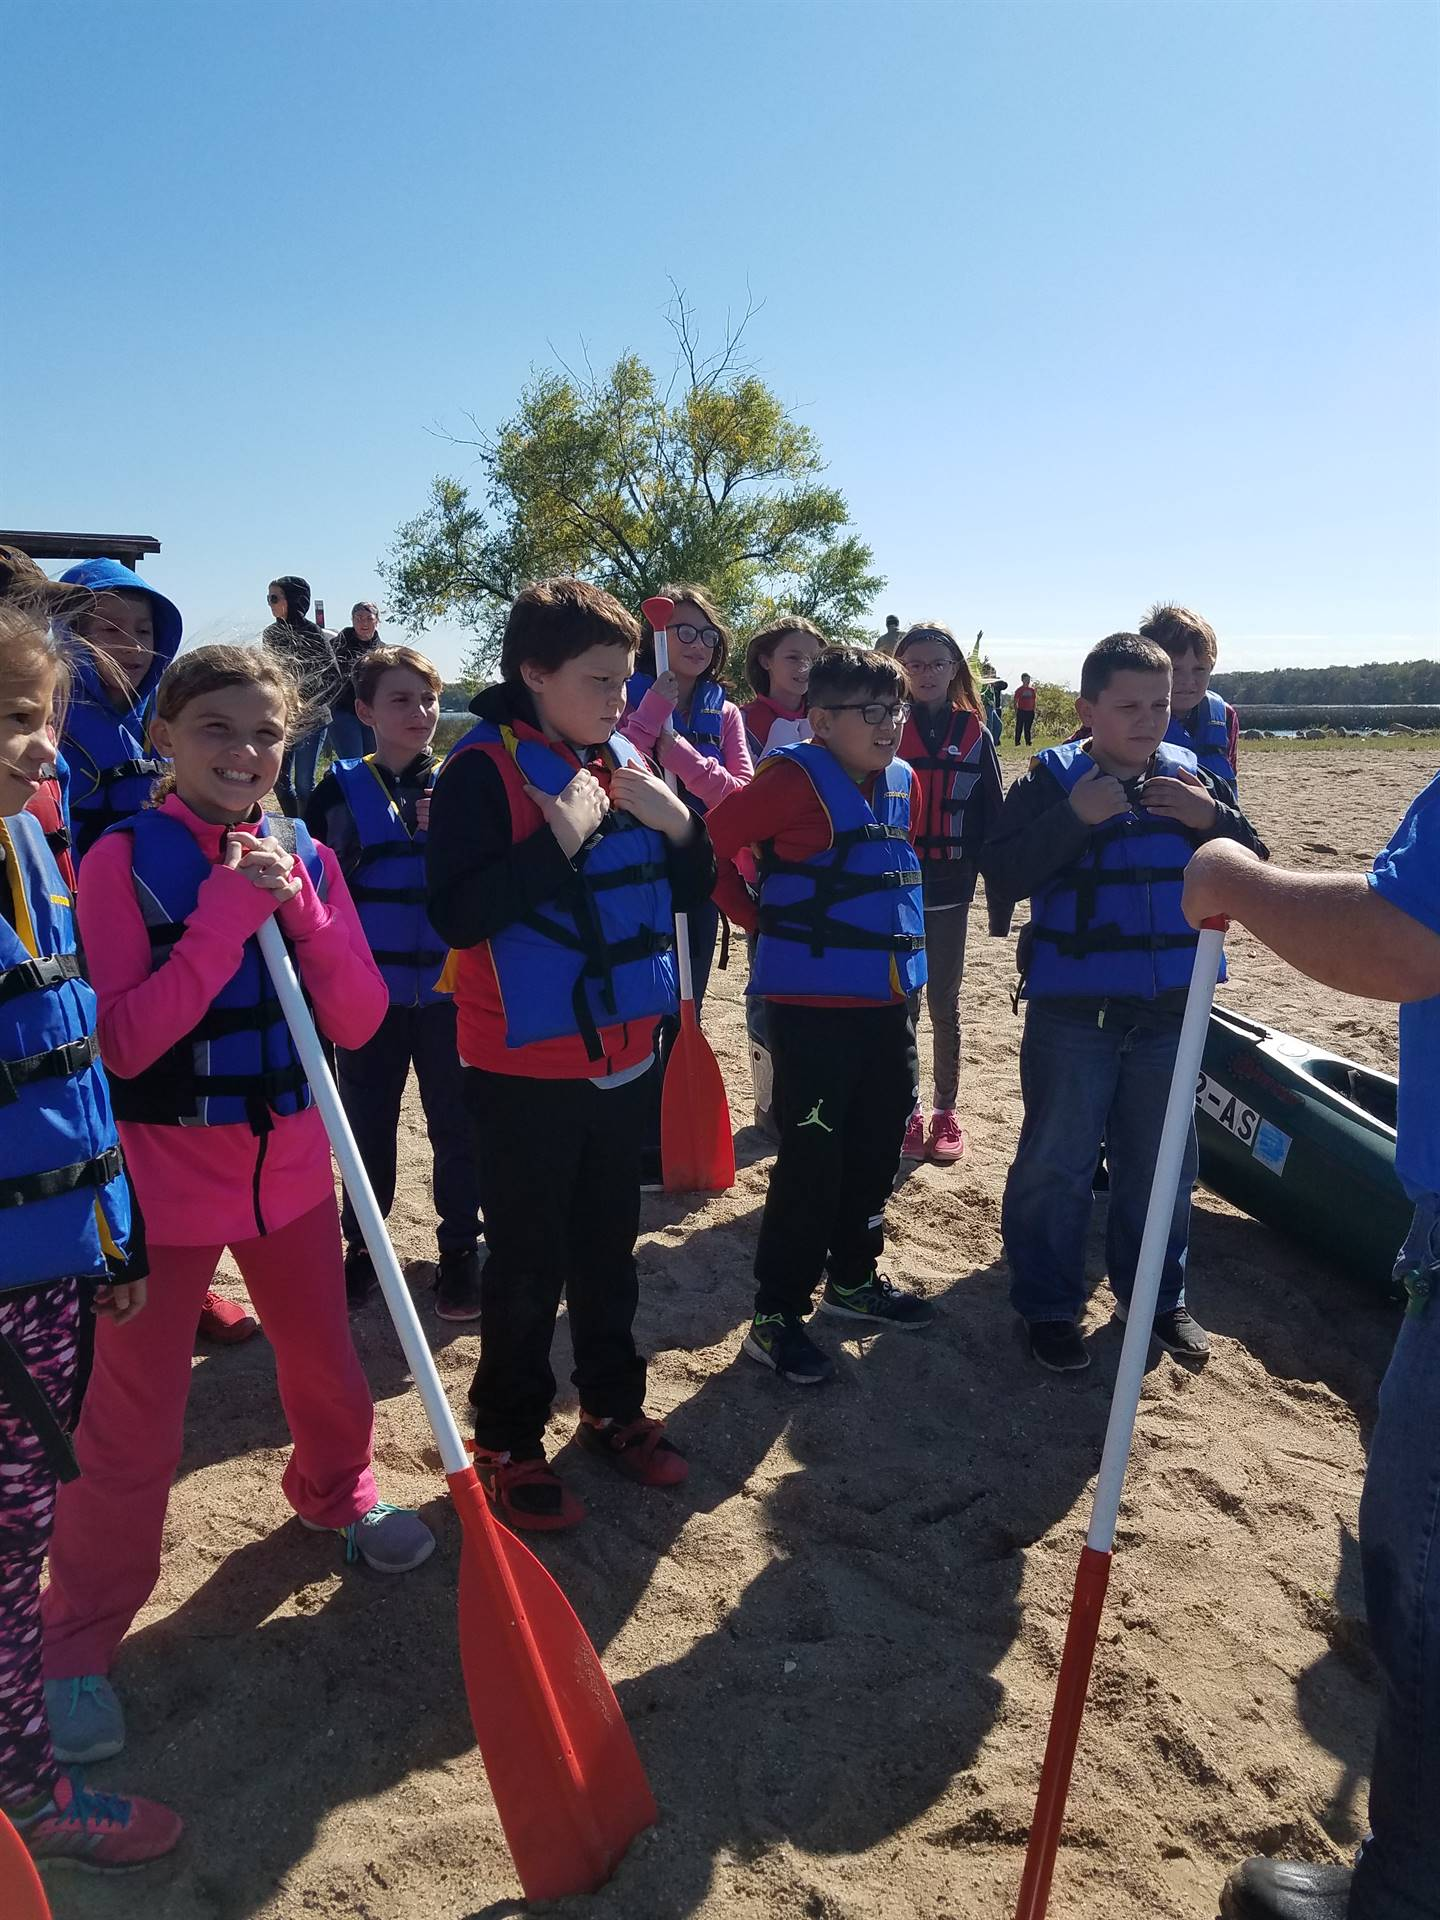 students standing on beach with life jackets and oars during PBIS Celebration/DNR Day -  Fall 2017